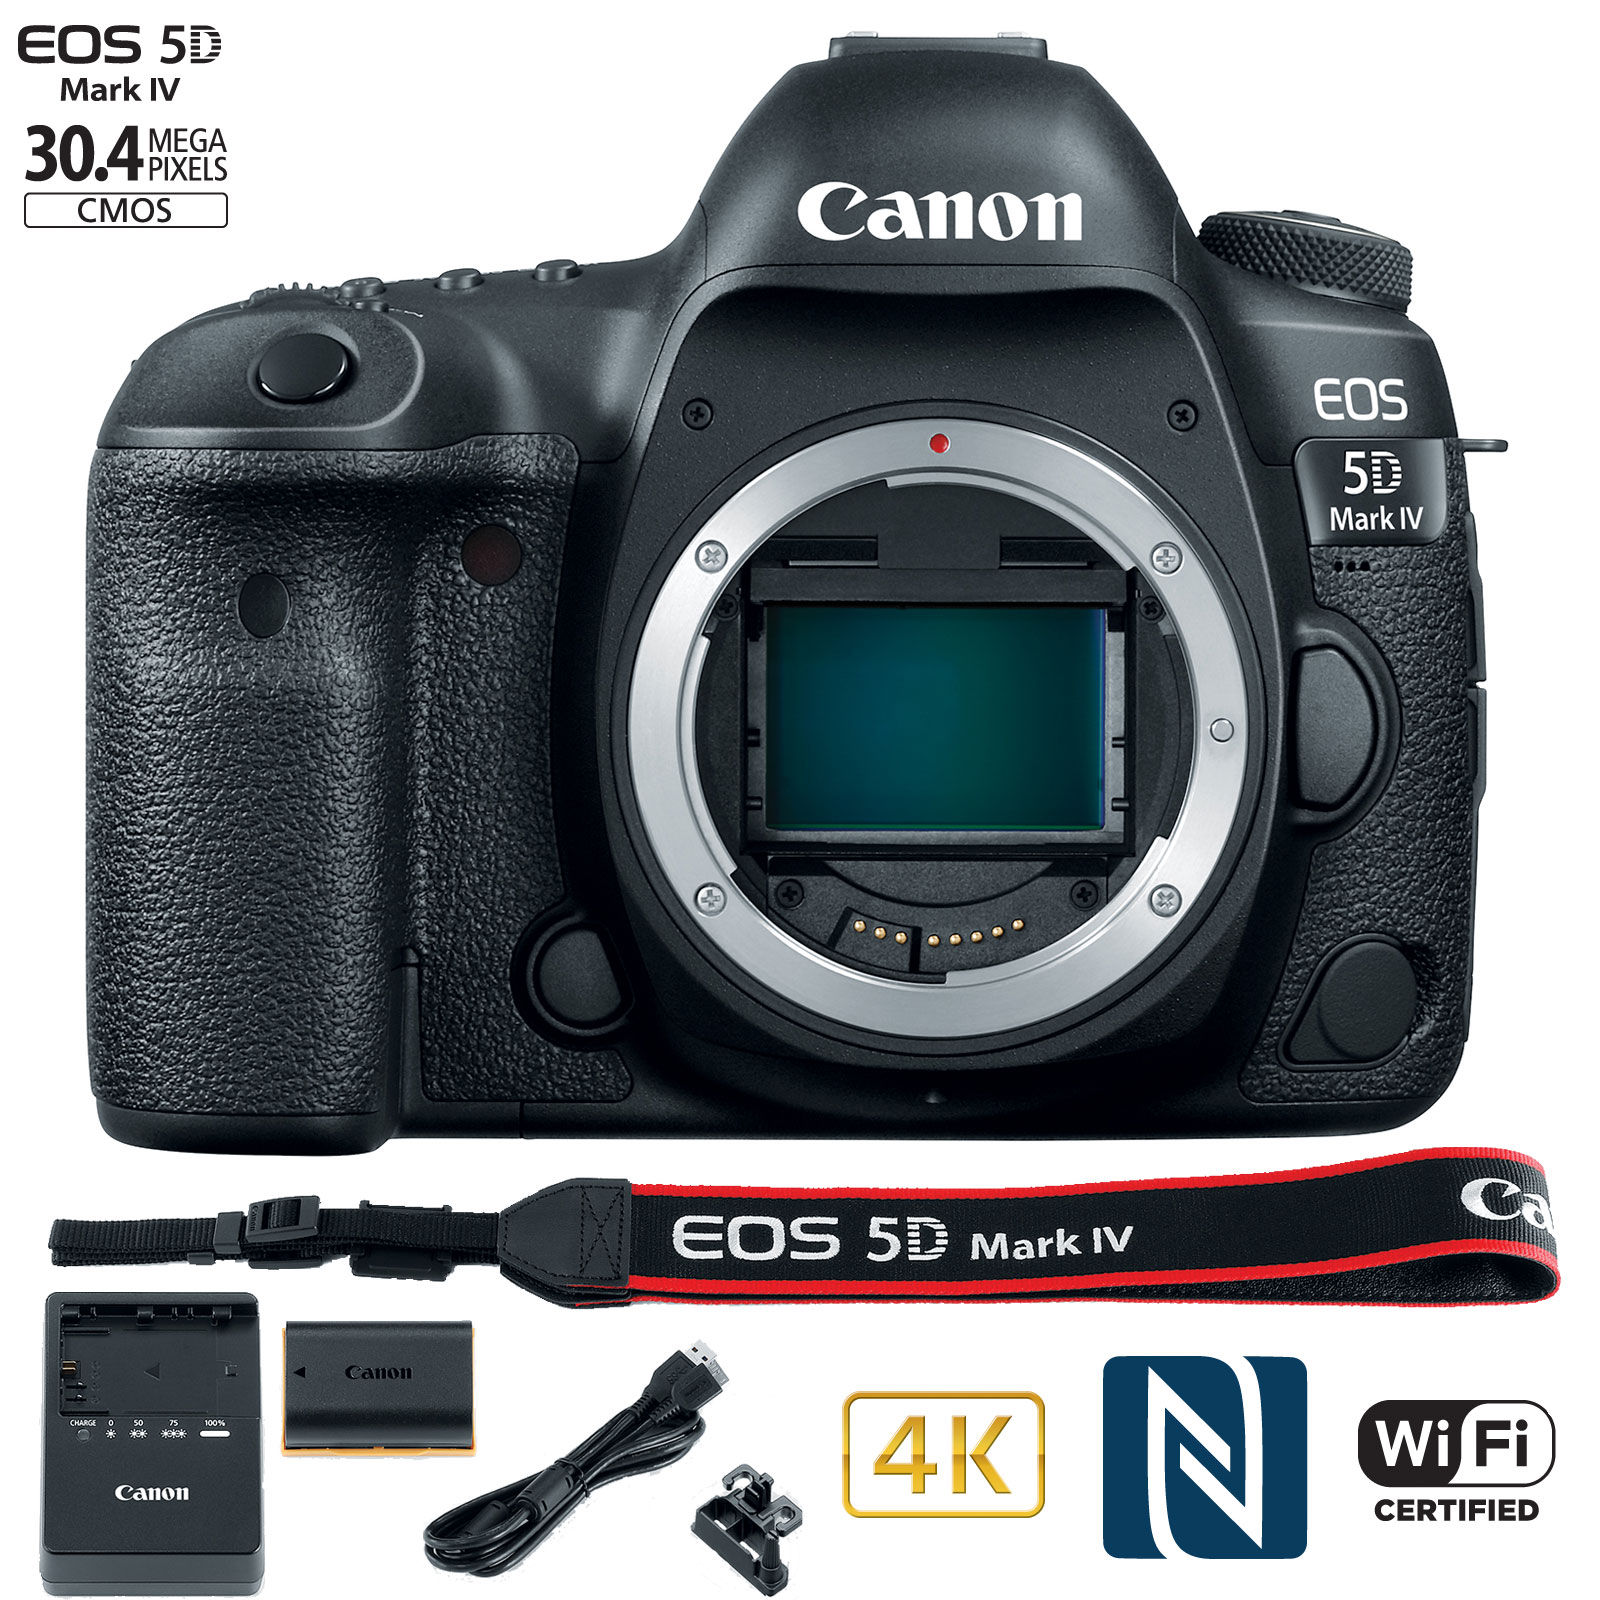 Canon EOS 5D Mark IV 30.4MP Full Frame CMOS DSLR Camera (Body) WiFi NFC 4K Video by Canon